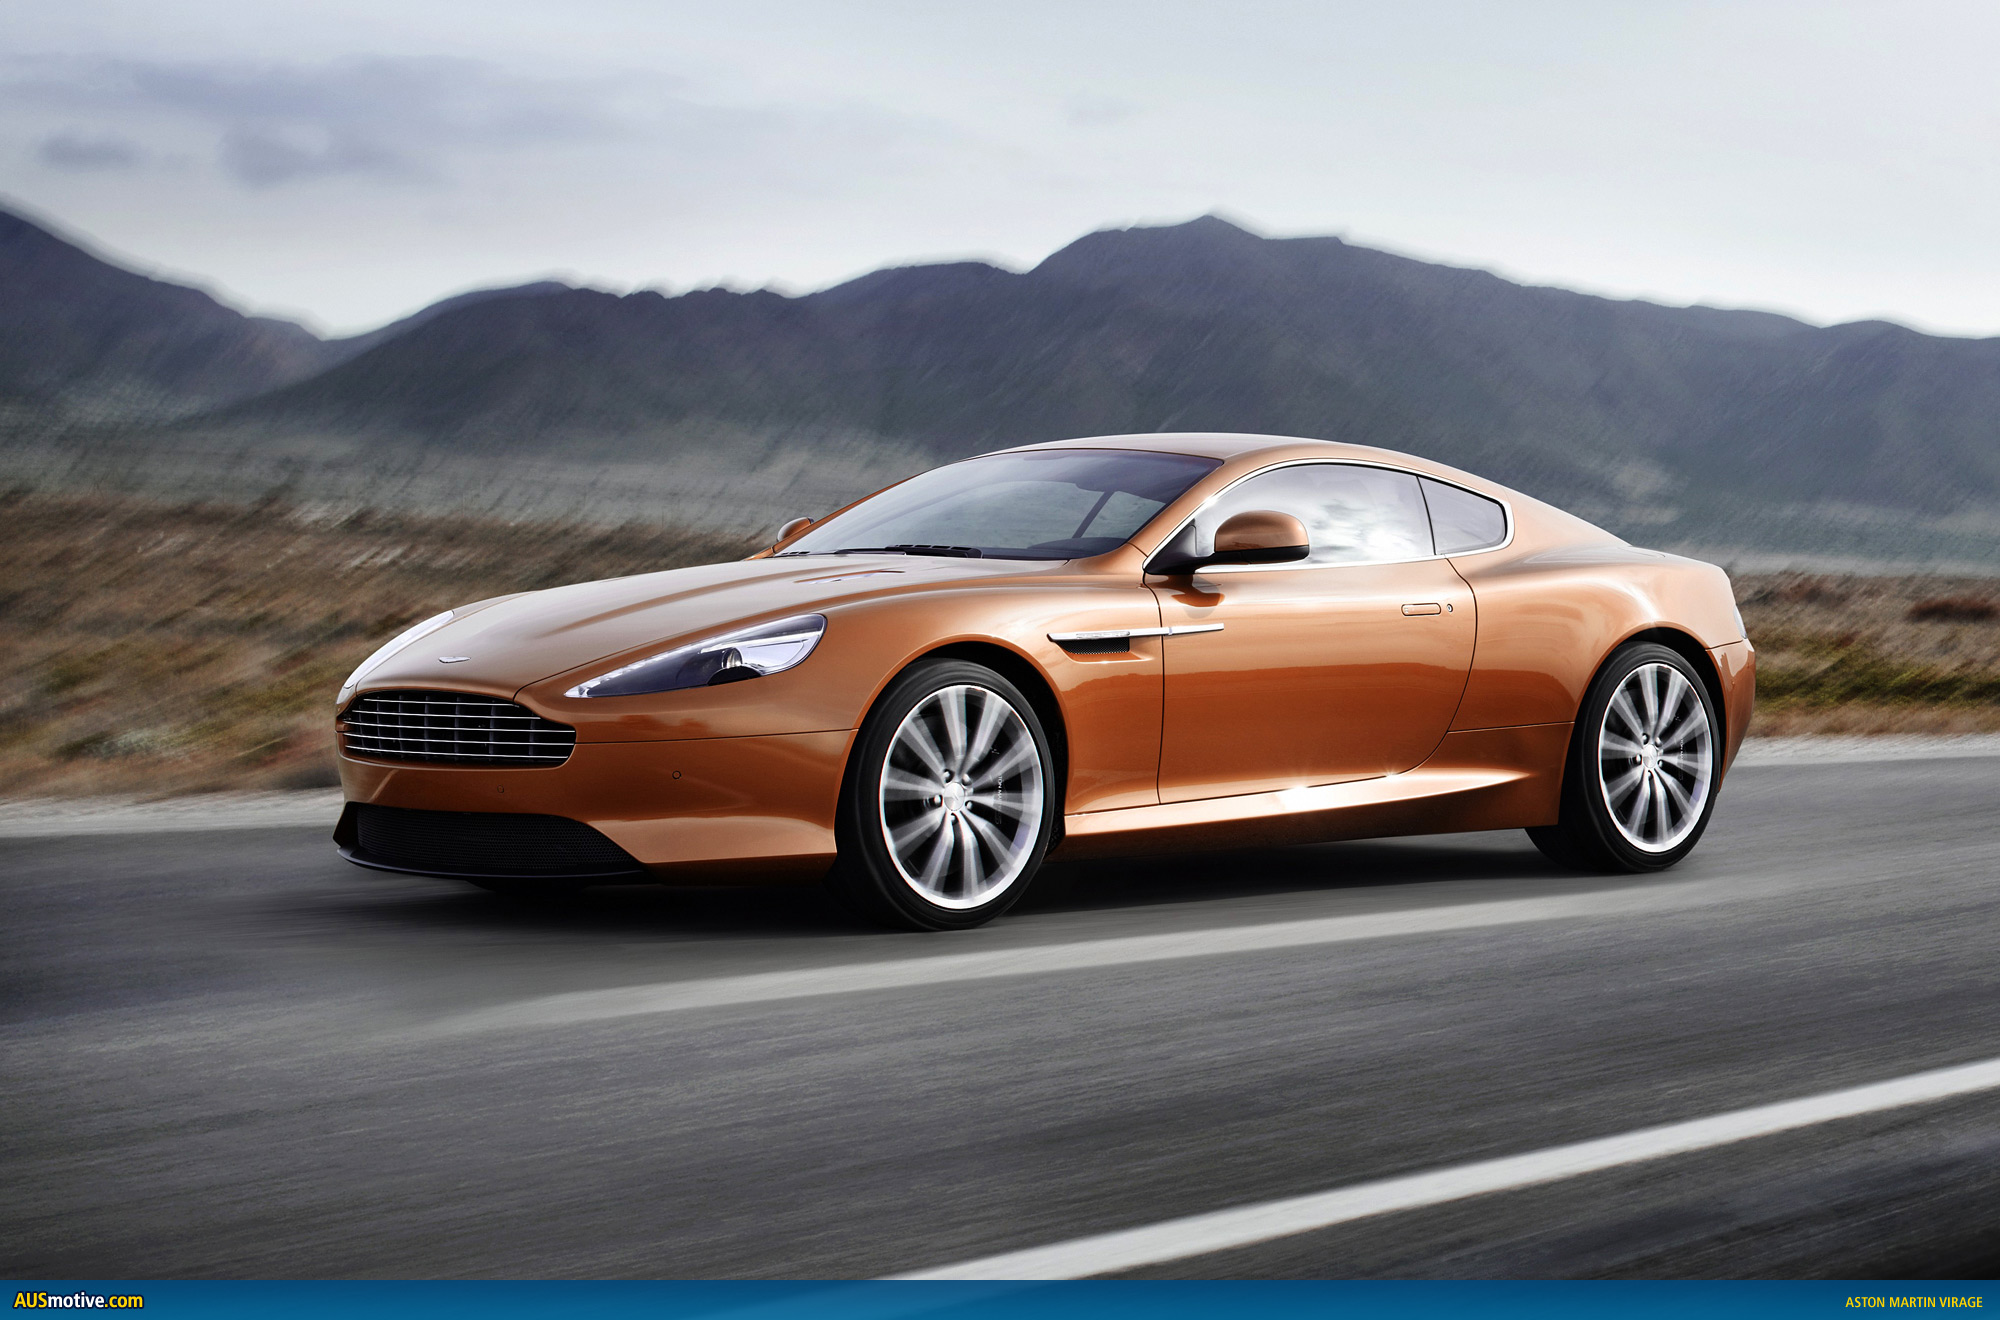 Aston martin virage photo - 2